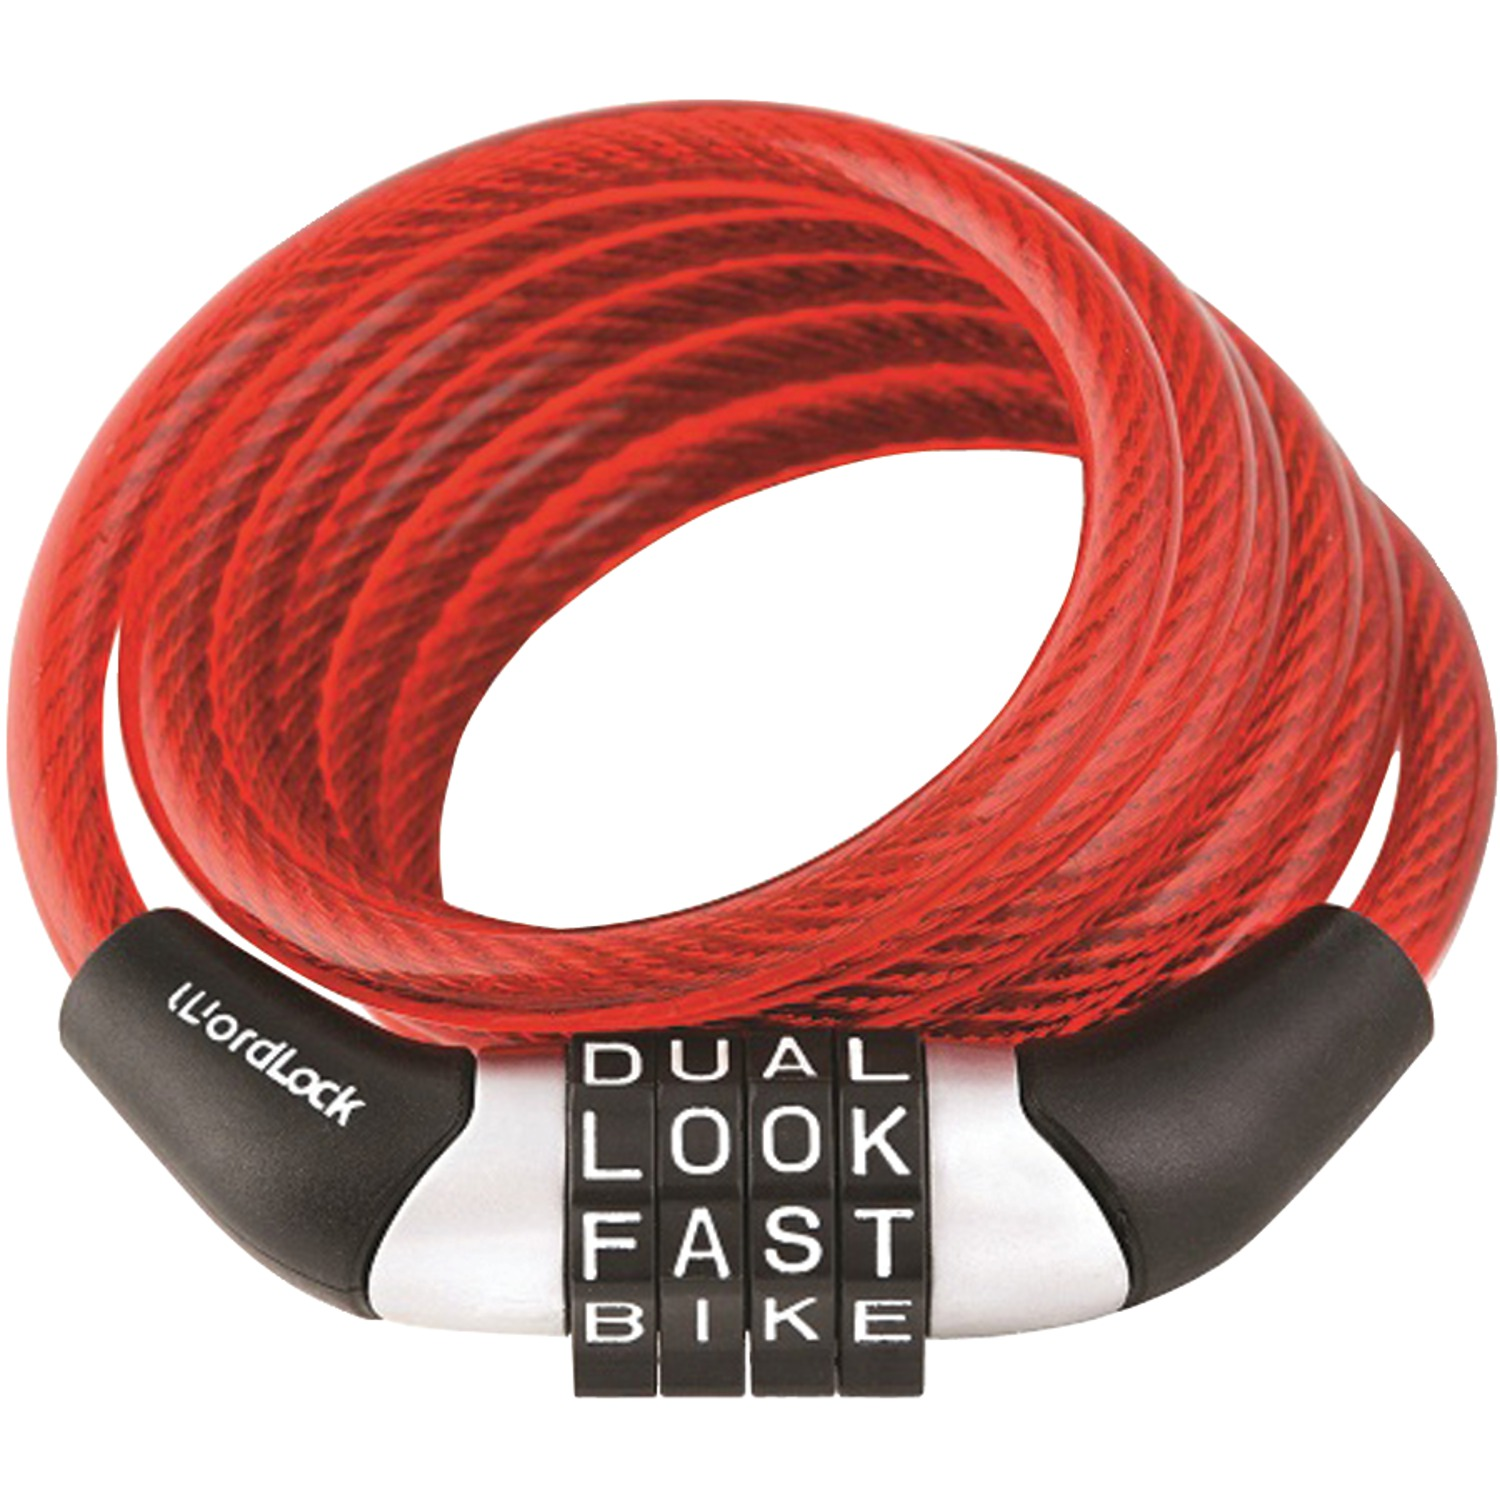 HBCCL455RD CL-455-RD Combination Non-resettable Cable Lock (red)